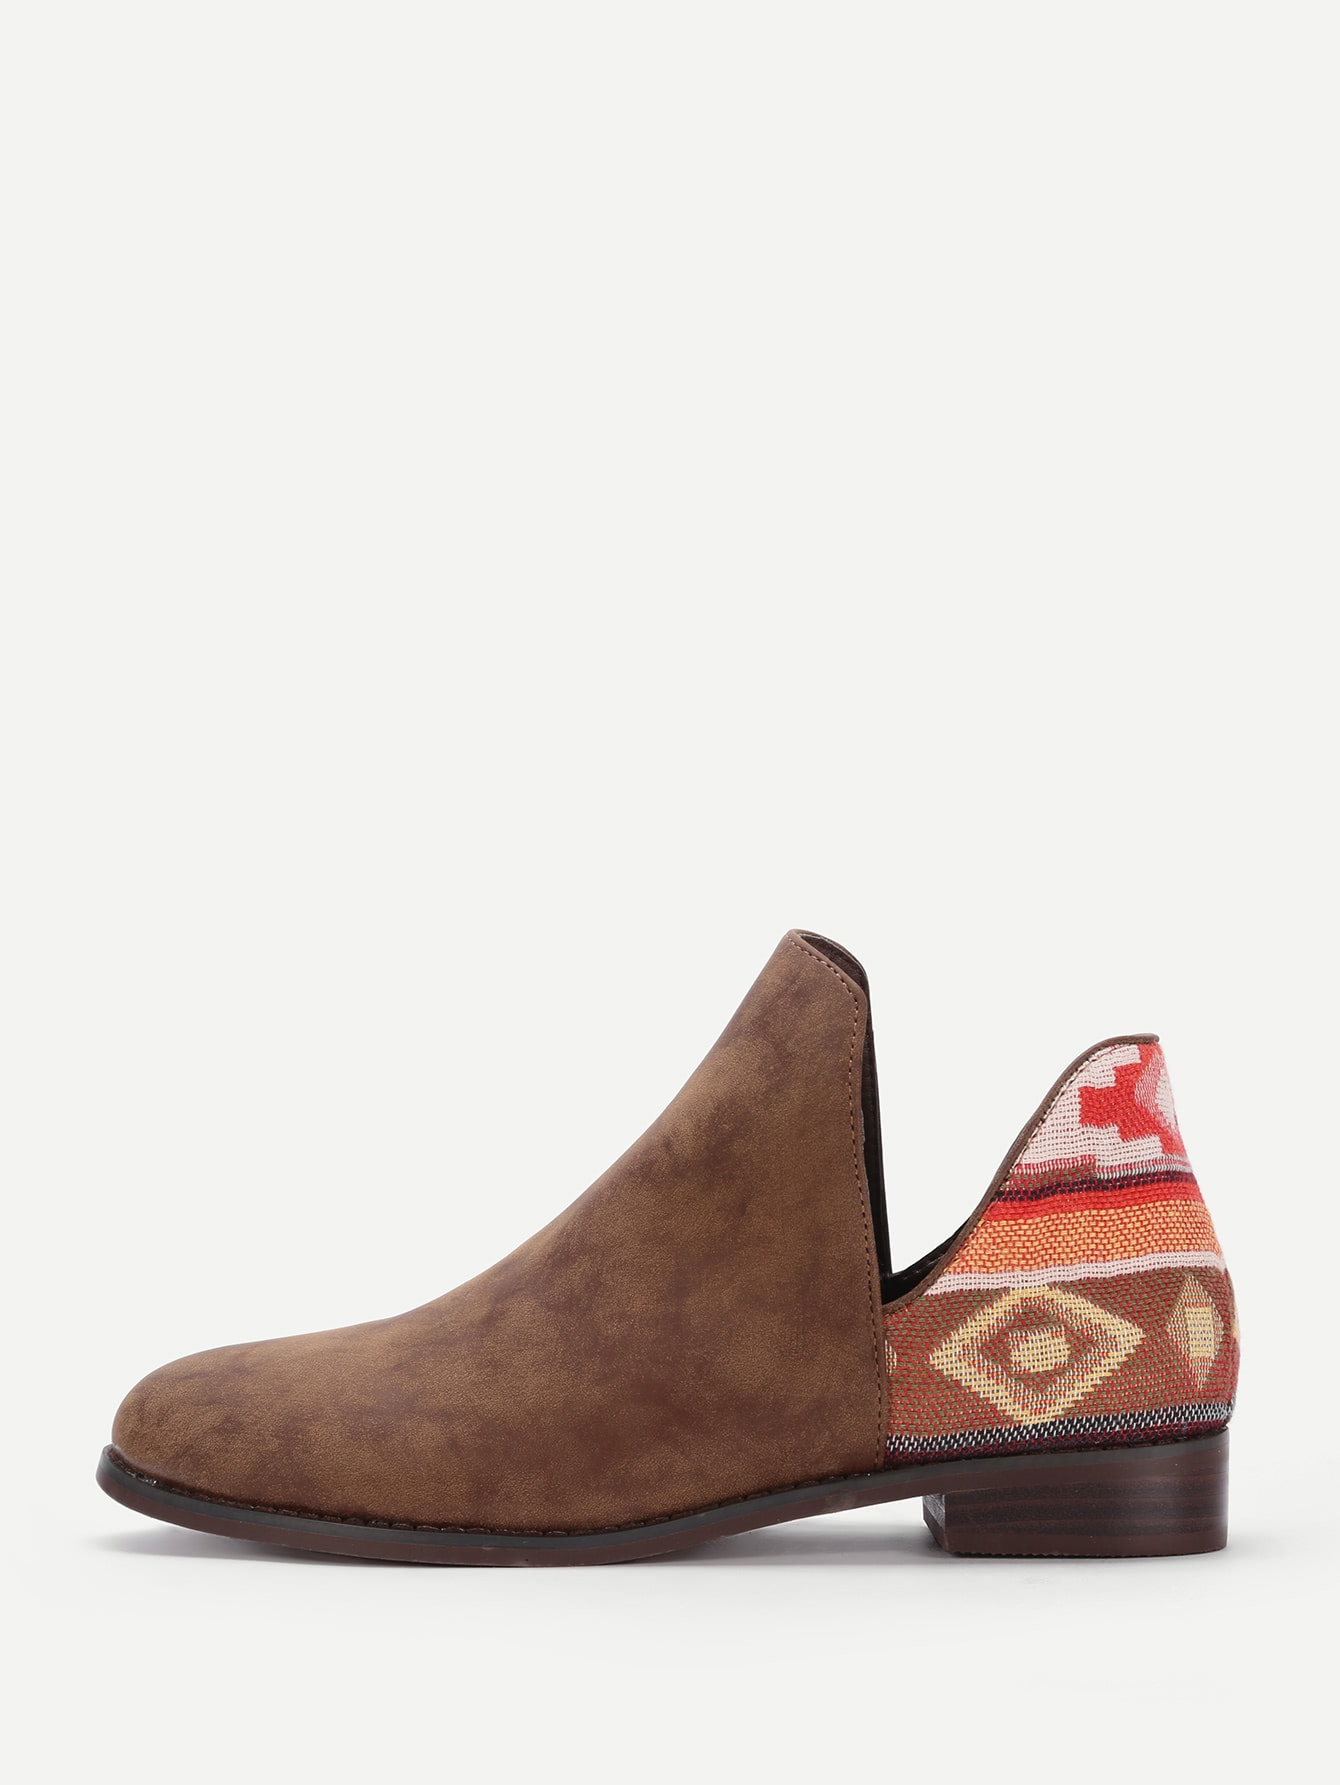 V Cut Chelsea Boots heeled chelsea boots